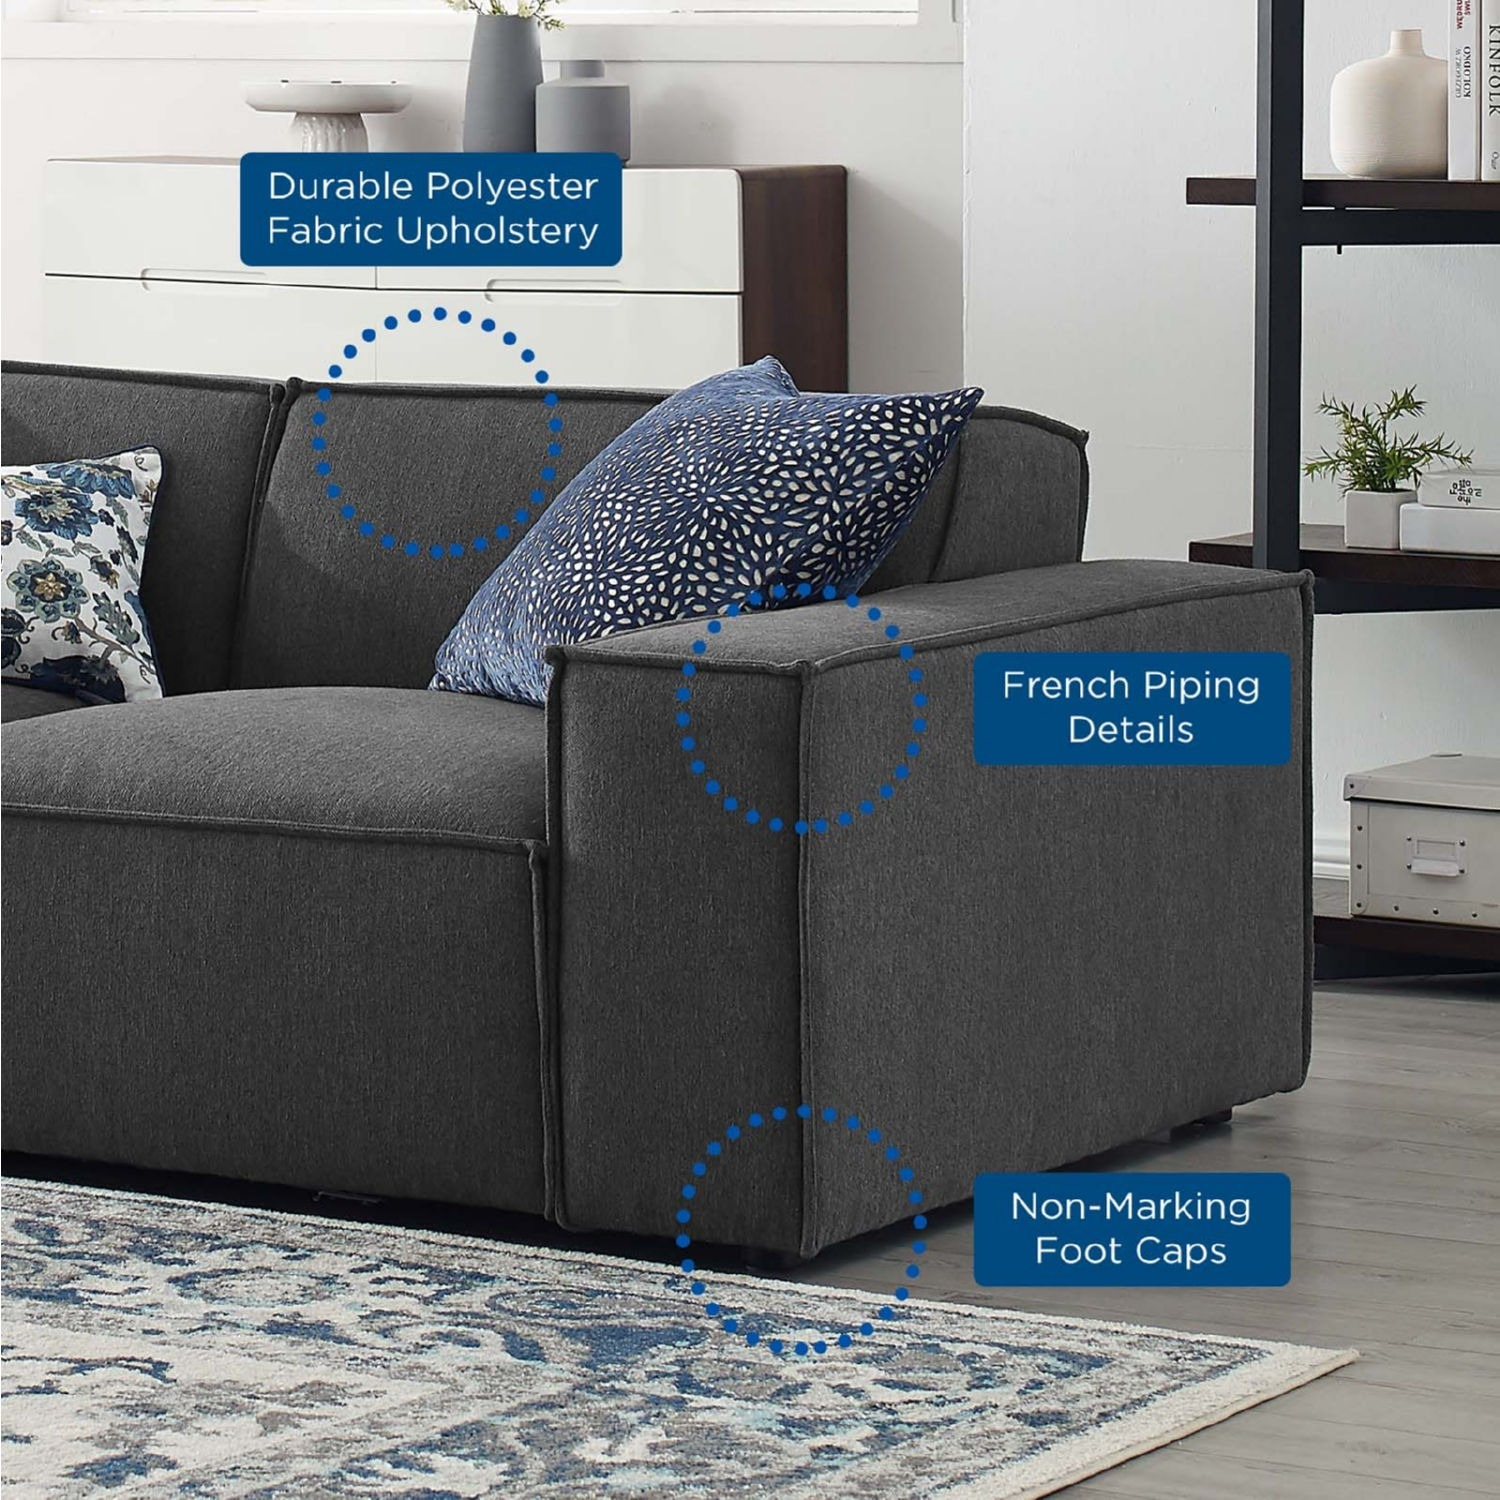 5-Piece Sectional Sofa In Charcoal Fabric - image-9